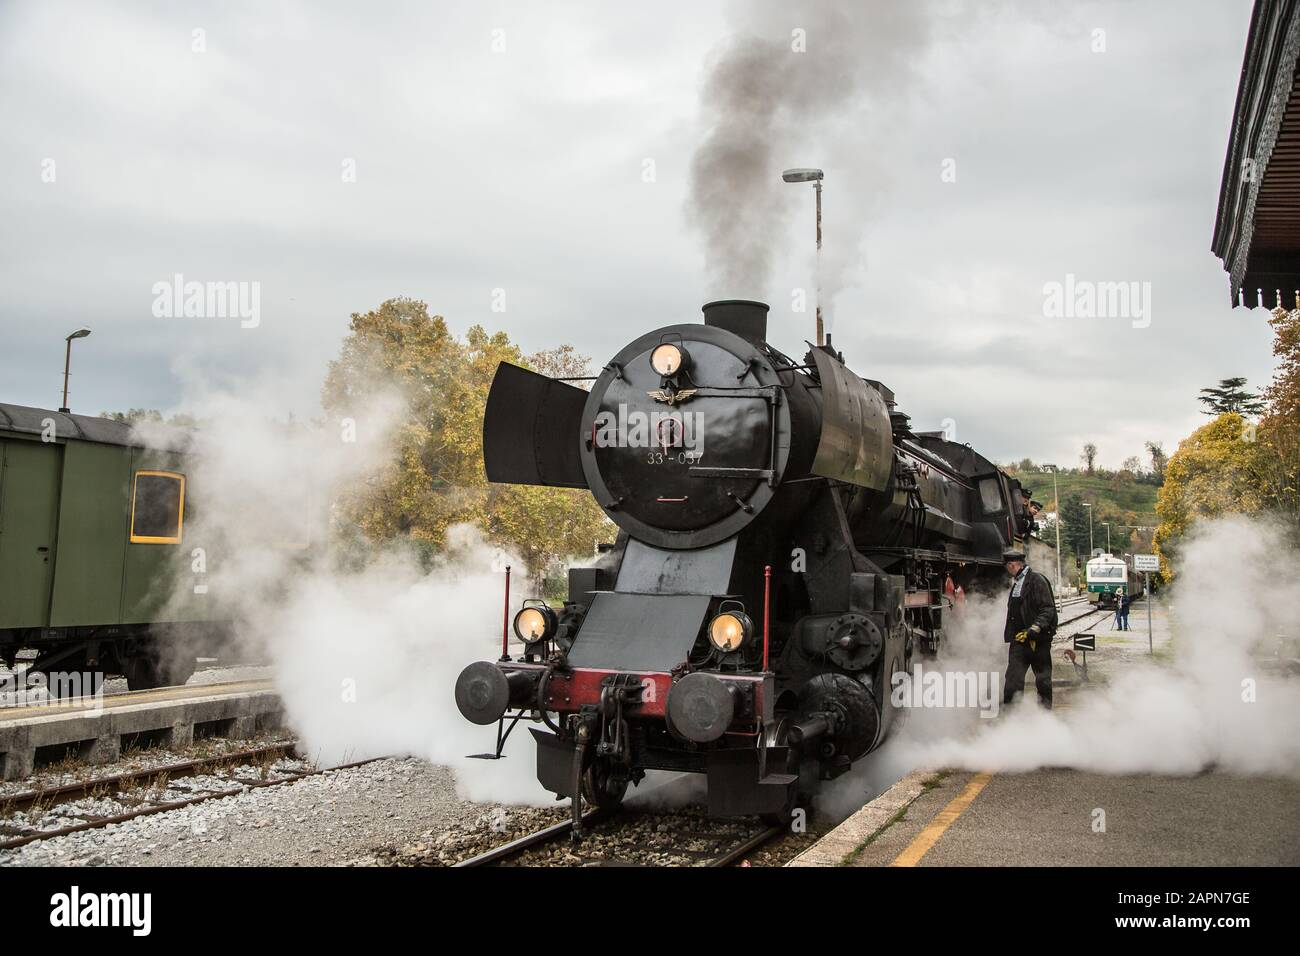 Nova Gorica, Slovenia, November 4, 2017: A 1944 German Henschel & Son steam engine  waits at the Nova Gorica train station before returning to Ljubljana on a hundred-year-old Bohinj railway line (Transalpina) that was built from 1900 to 1906 as the shortest connection of the Austro-Hungarian Empire with the Adriatic Sea in Trieste (Italy). Stock Photo